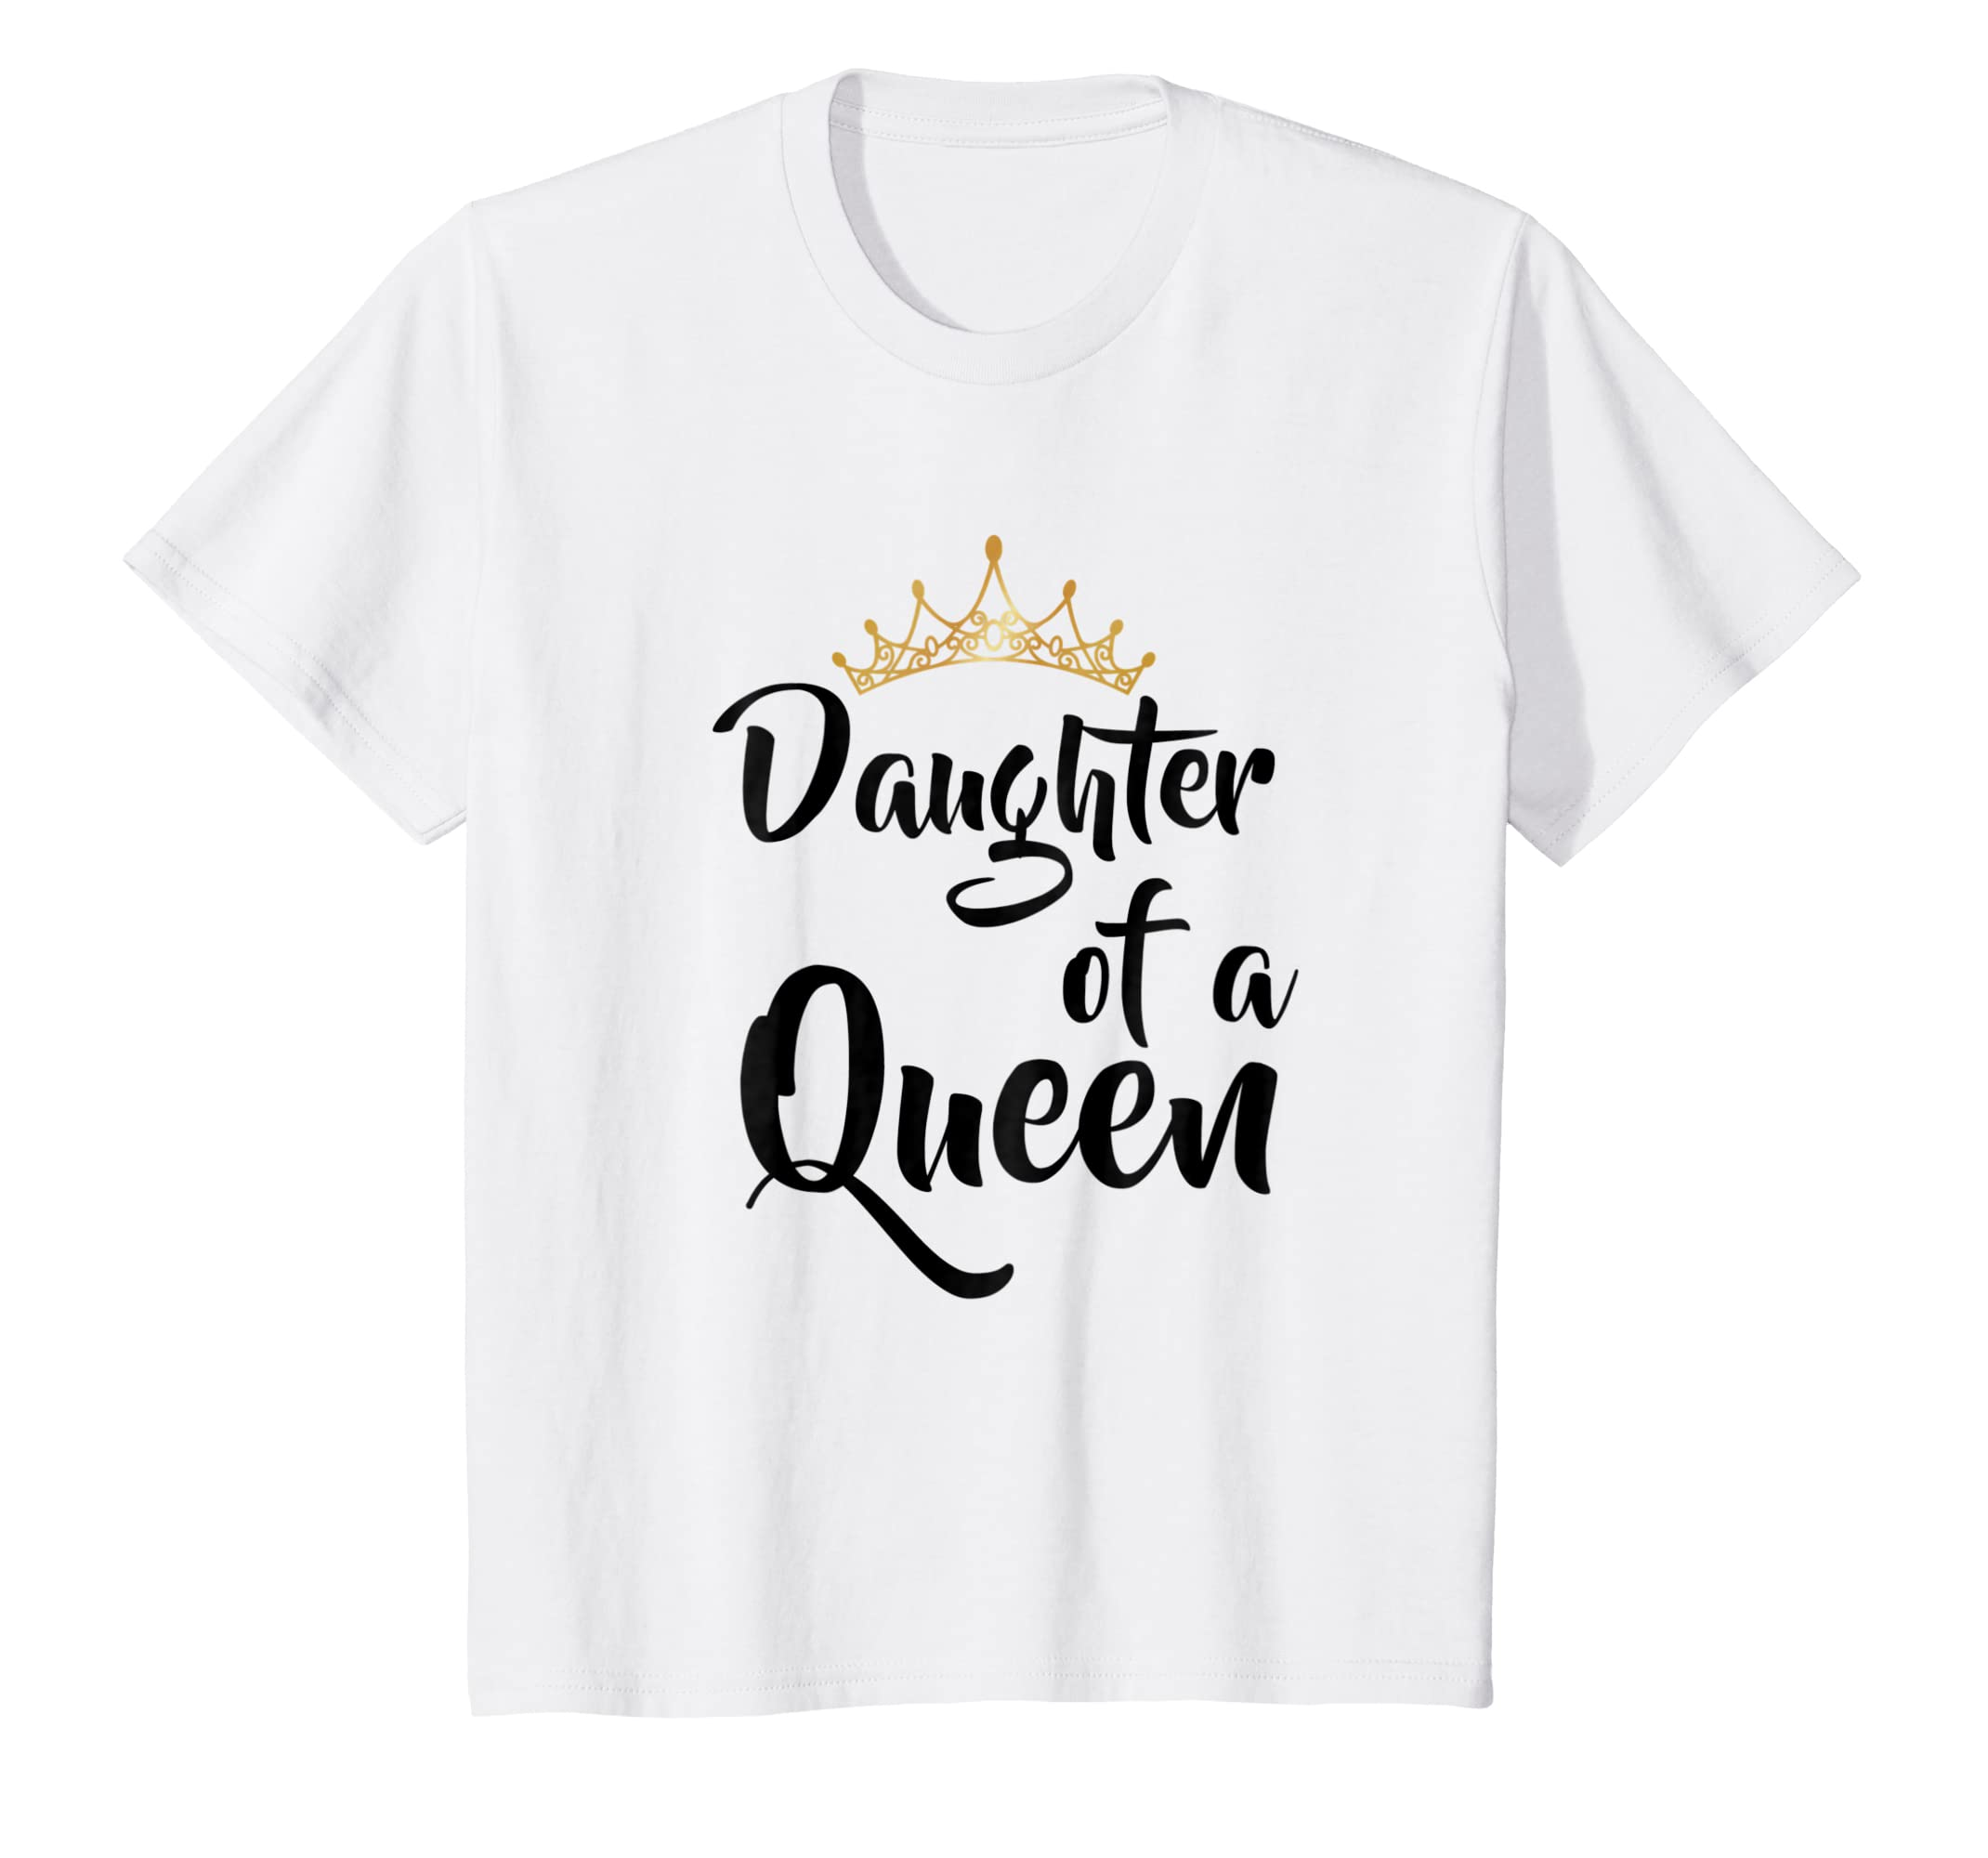 bc213fcc Amazon.com: Daughter of a Queen T Shirt Birthday Gift for Mother's Day:  Clothing